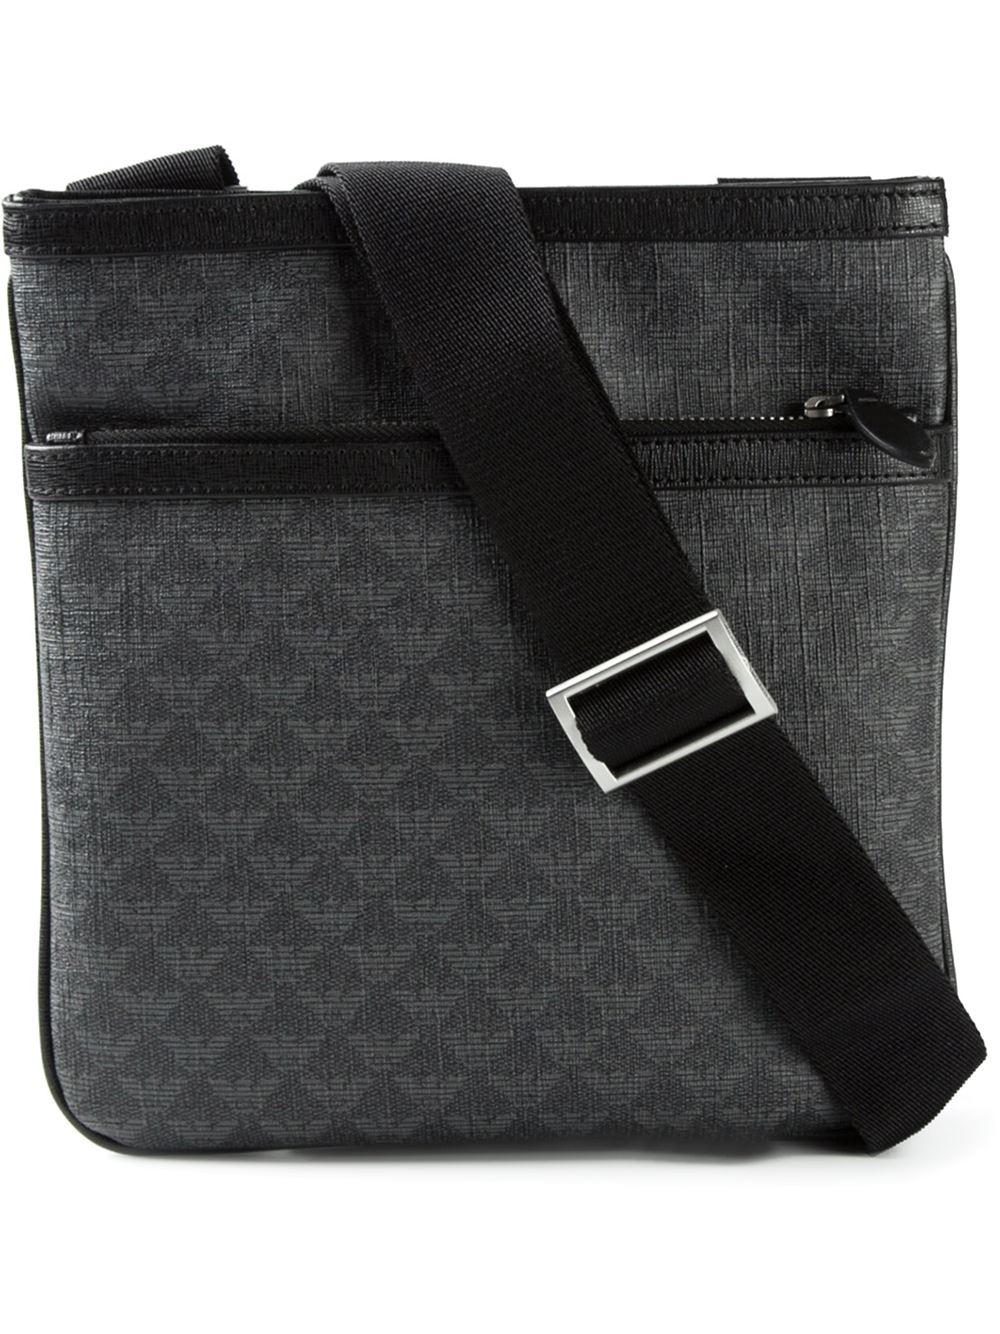 Lyst - Emporio Armani Classic Cross Body Bag in Black for Men e5d32afdcb693